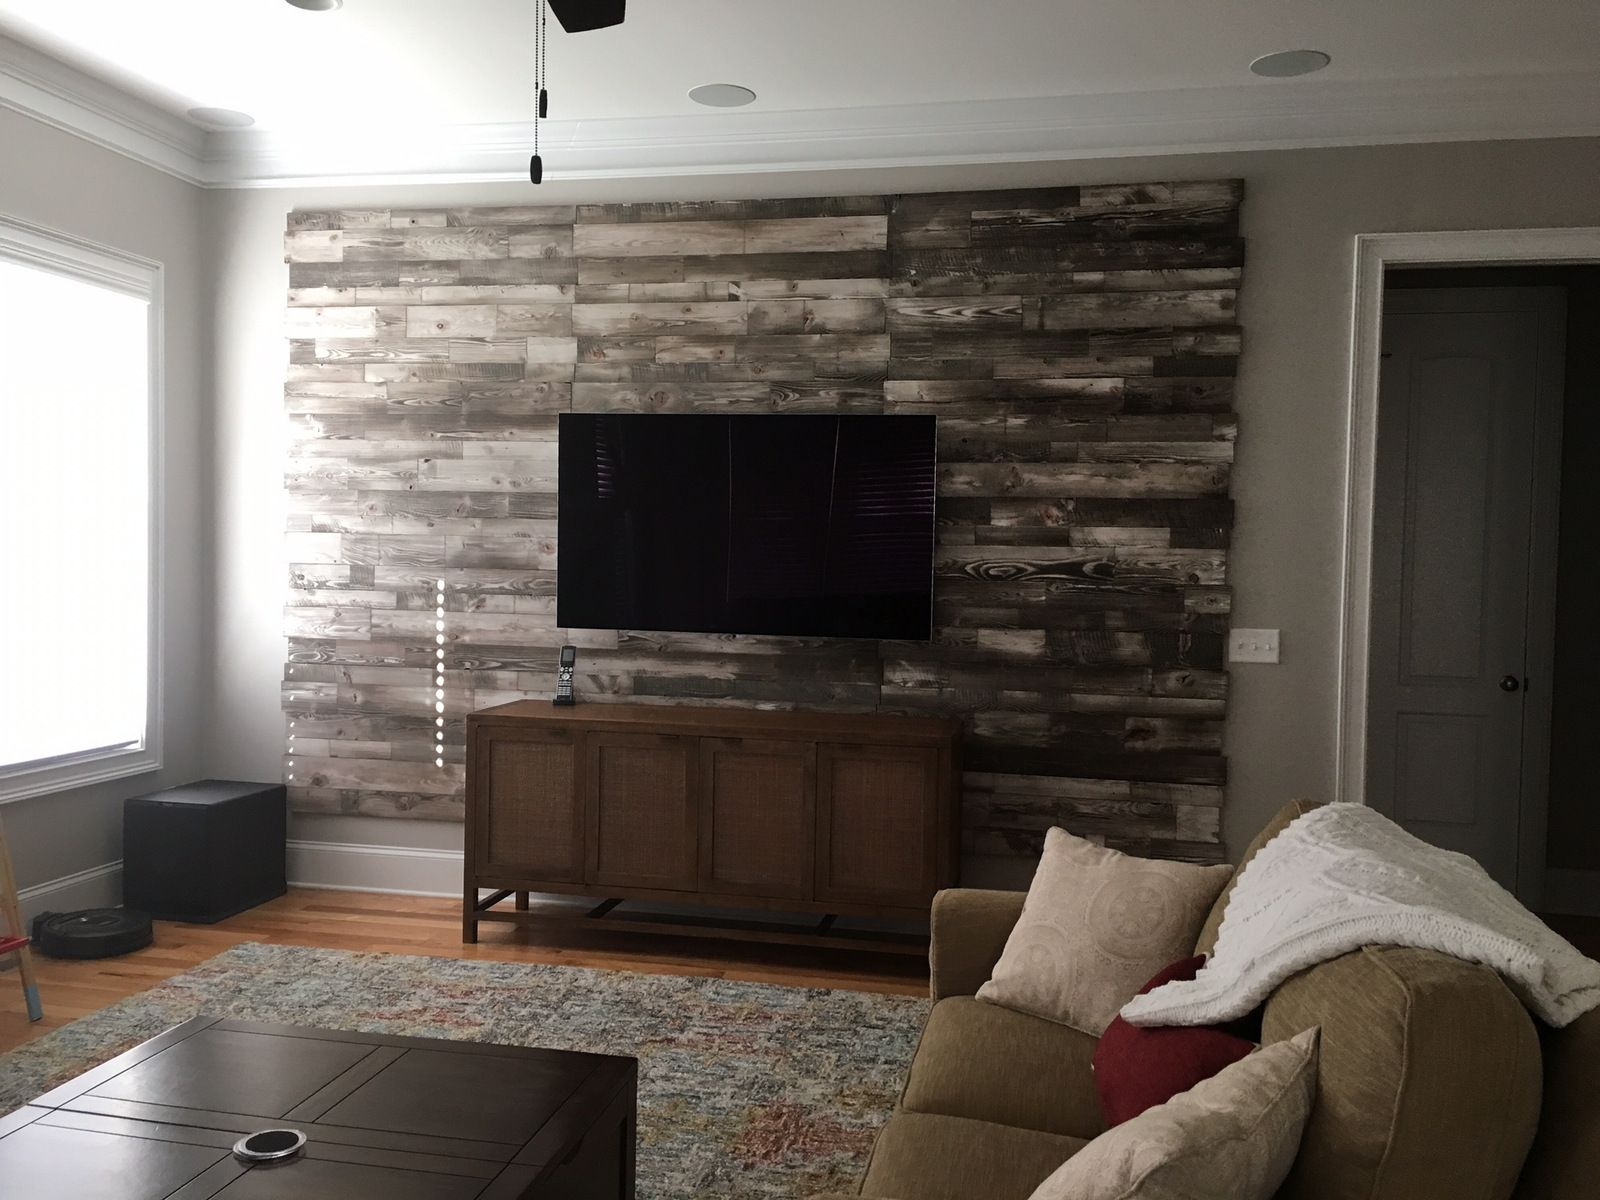 Customer in South Carolina just submitted this photo. Featured here is our Stonewash Grey Prefab Wall Panels. Nice design how she left the sheet rock wall on all four sides, kind of like a wood tapestry.